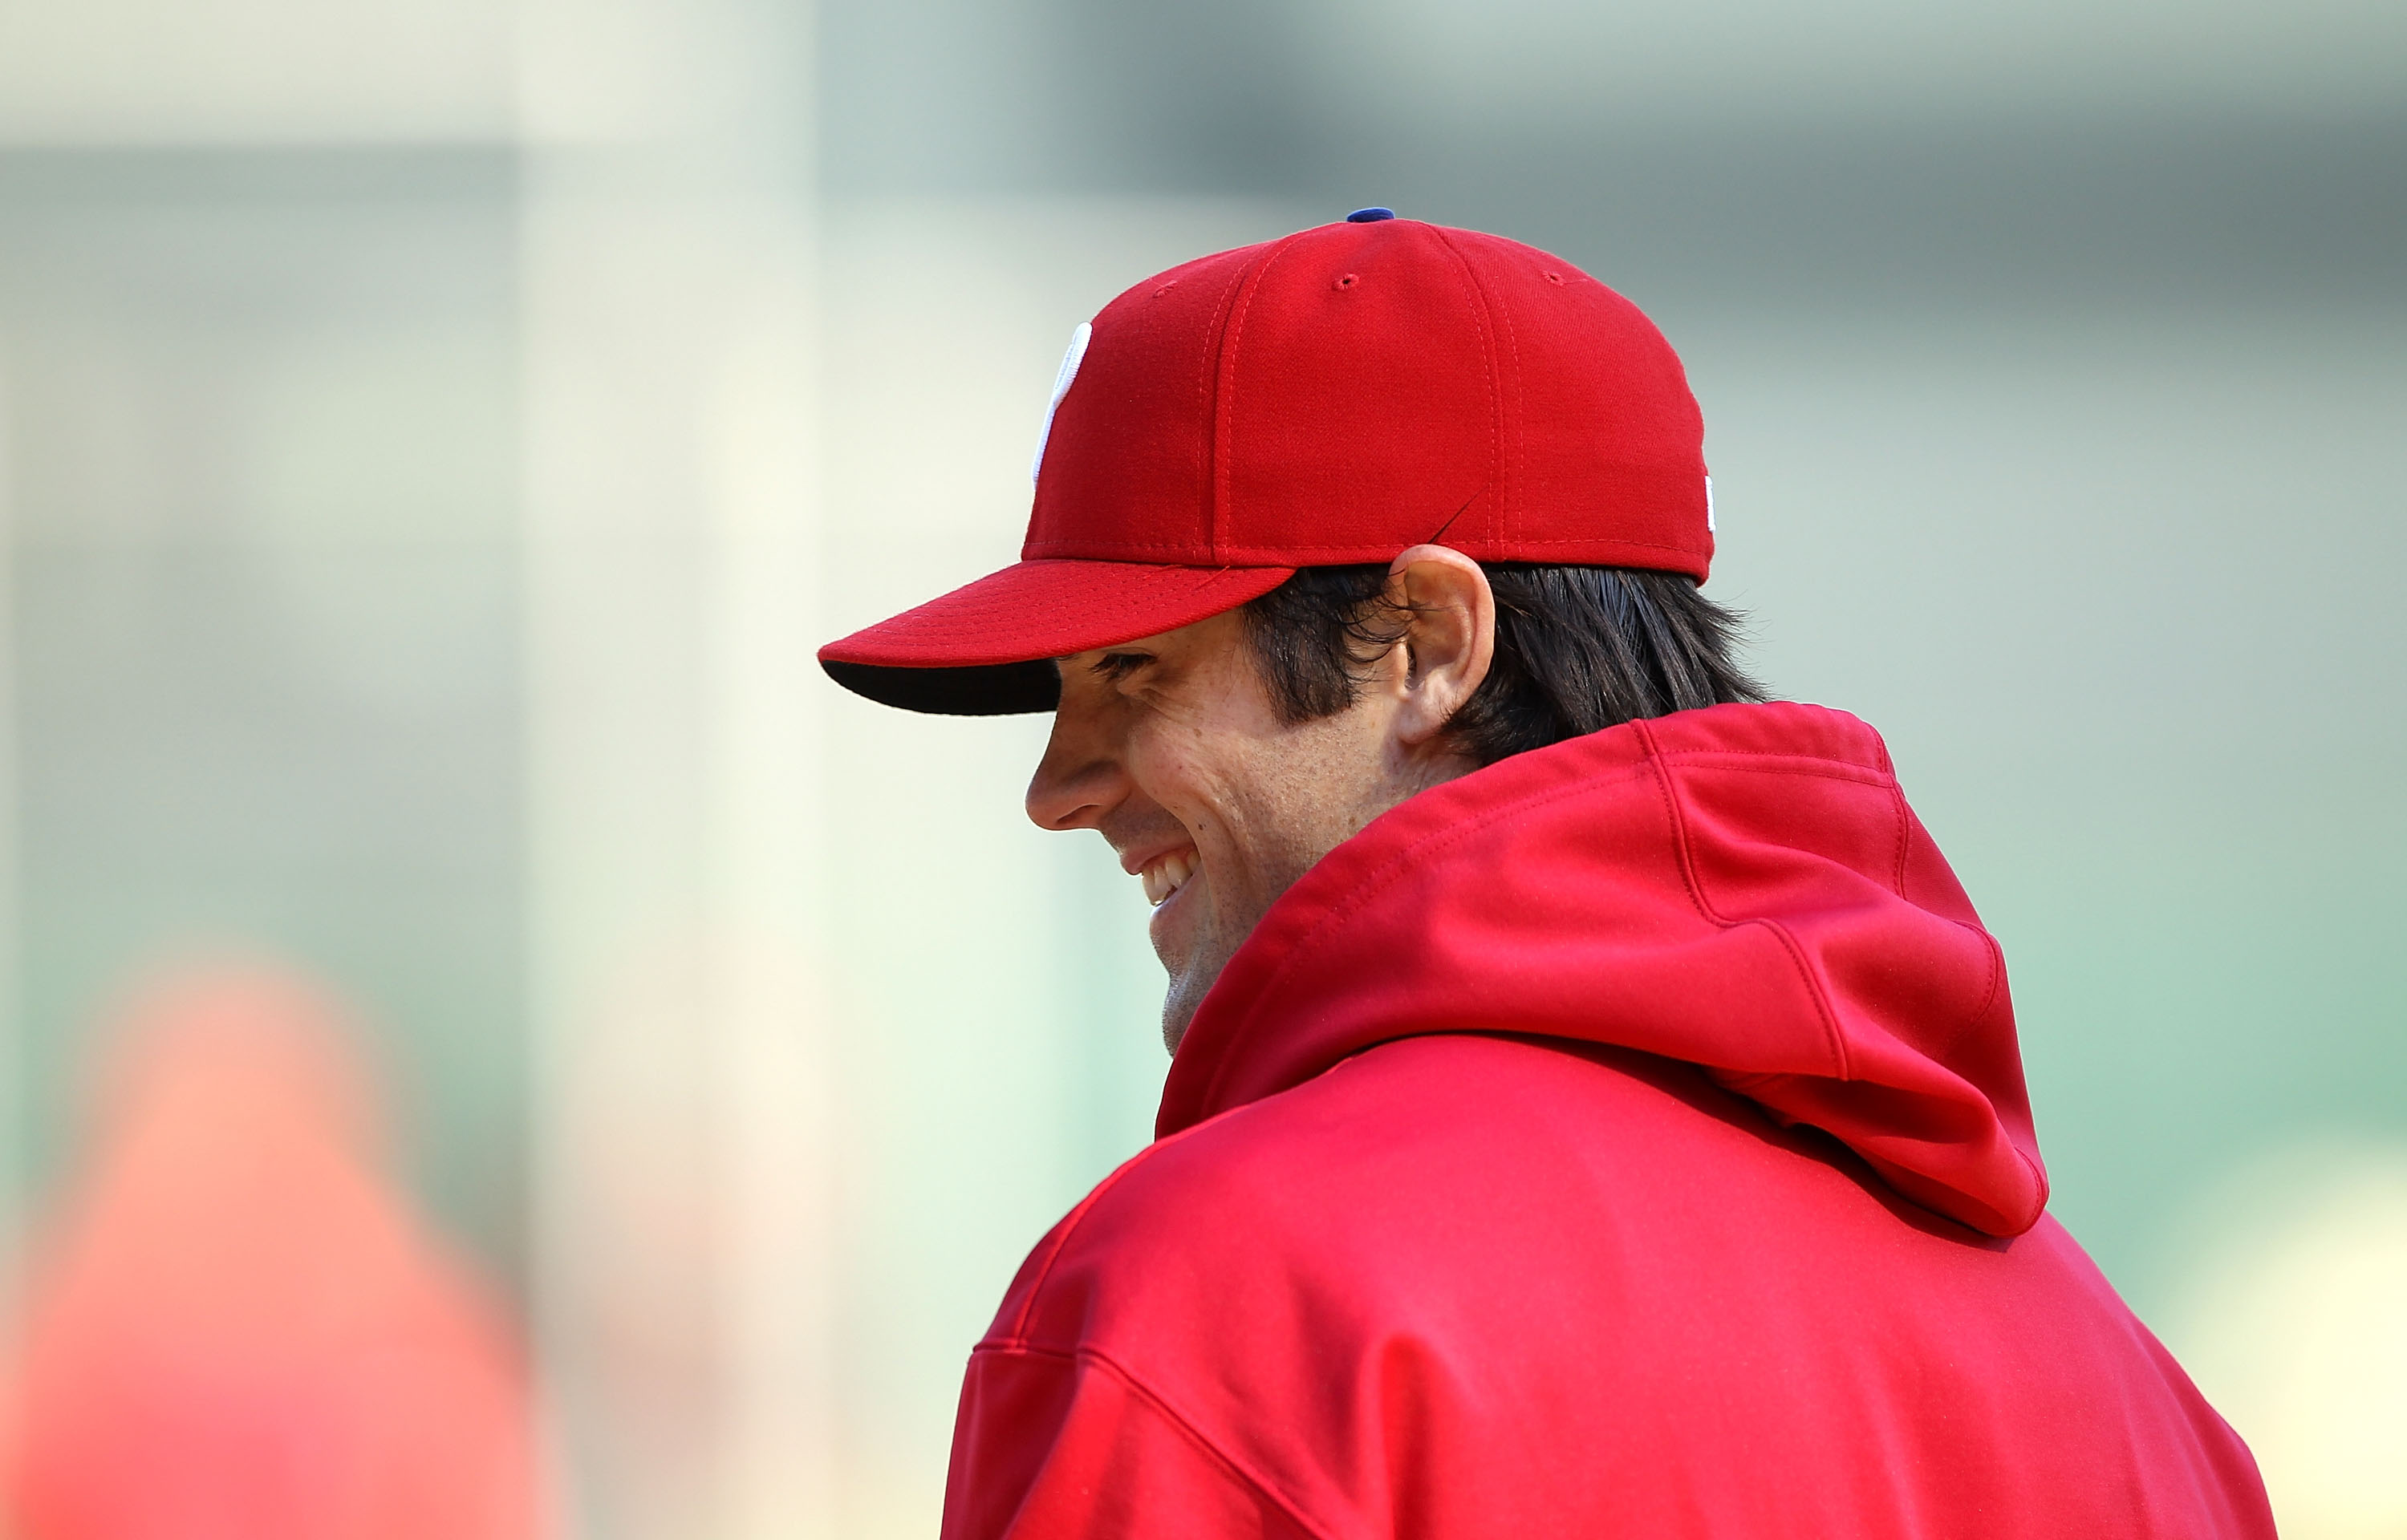 SAN FRANCISCO - OCTOBER 18:  Game three starter Cole Hamels #35 of the Philadephia Philles takes batting practice during a workout session for the NLCS at AT&T Park on October 18, 2010 in San Francisco, California.  (Photo by Ezra Shaw/Getty Images)